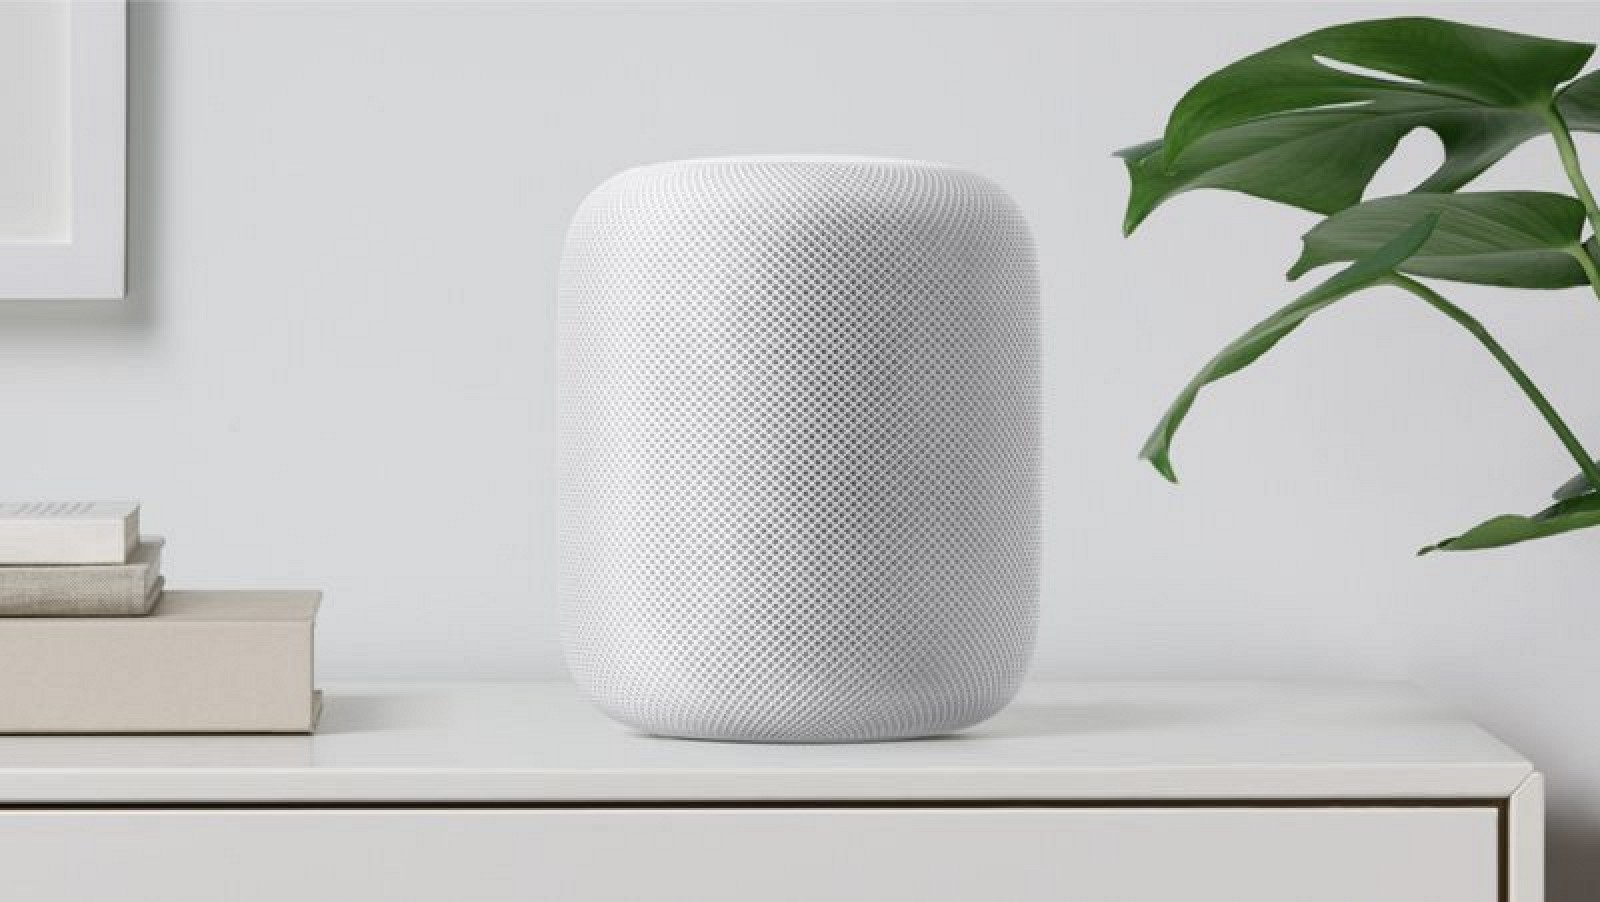 Photo of Apple's HomePod receives FCC approval